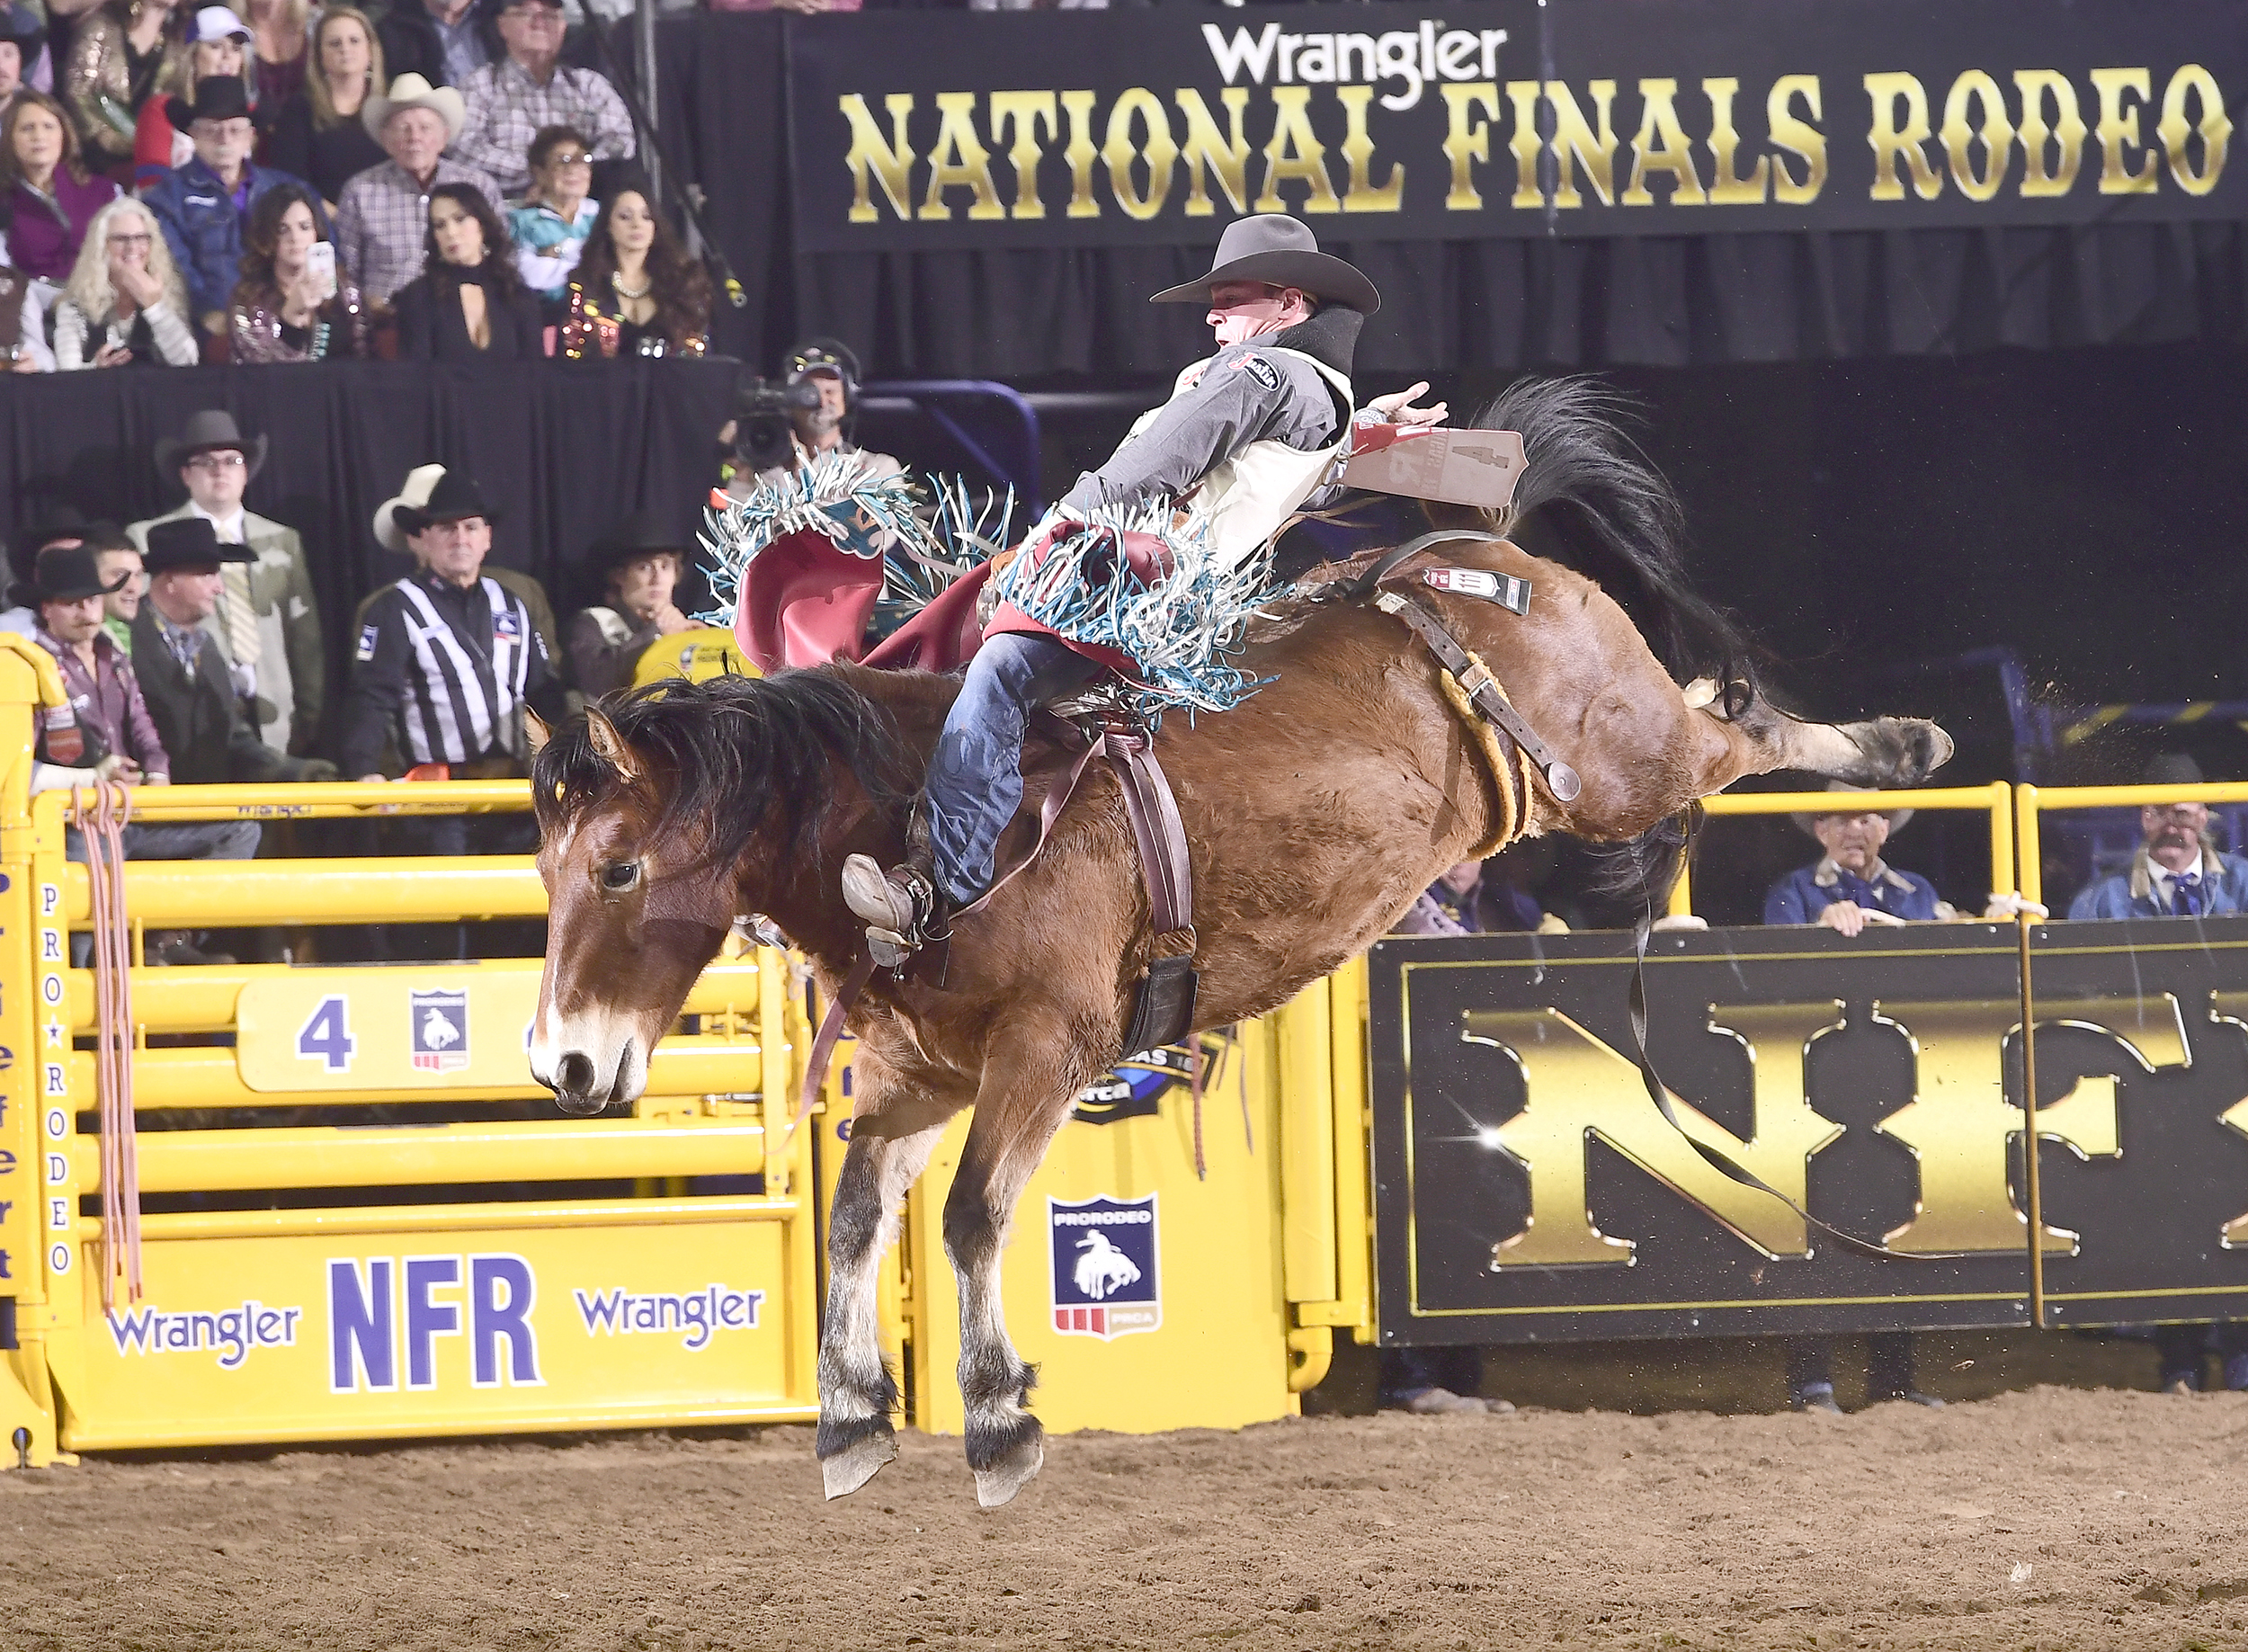 After a slow start, two-time world champion bareback rider Tim O'Connell has picked up two key paychecks in Rounds 3 and 4. On Sunday night, he rode Burch Rodeo's Pip Squeak for 84.5 points. (PRCA PRORODEO PHOTO BY JAMES PHIFER)